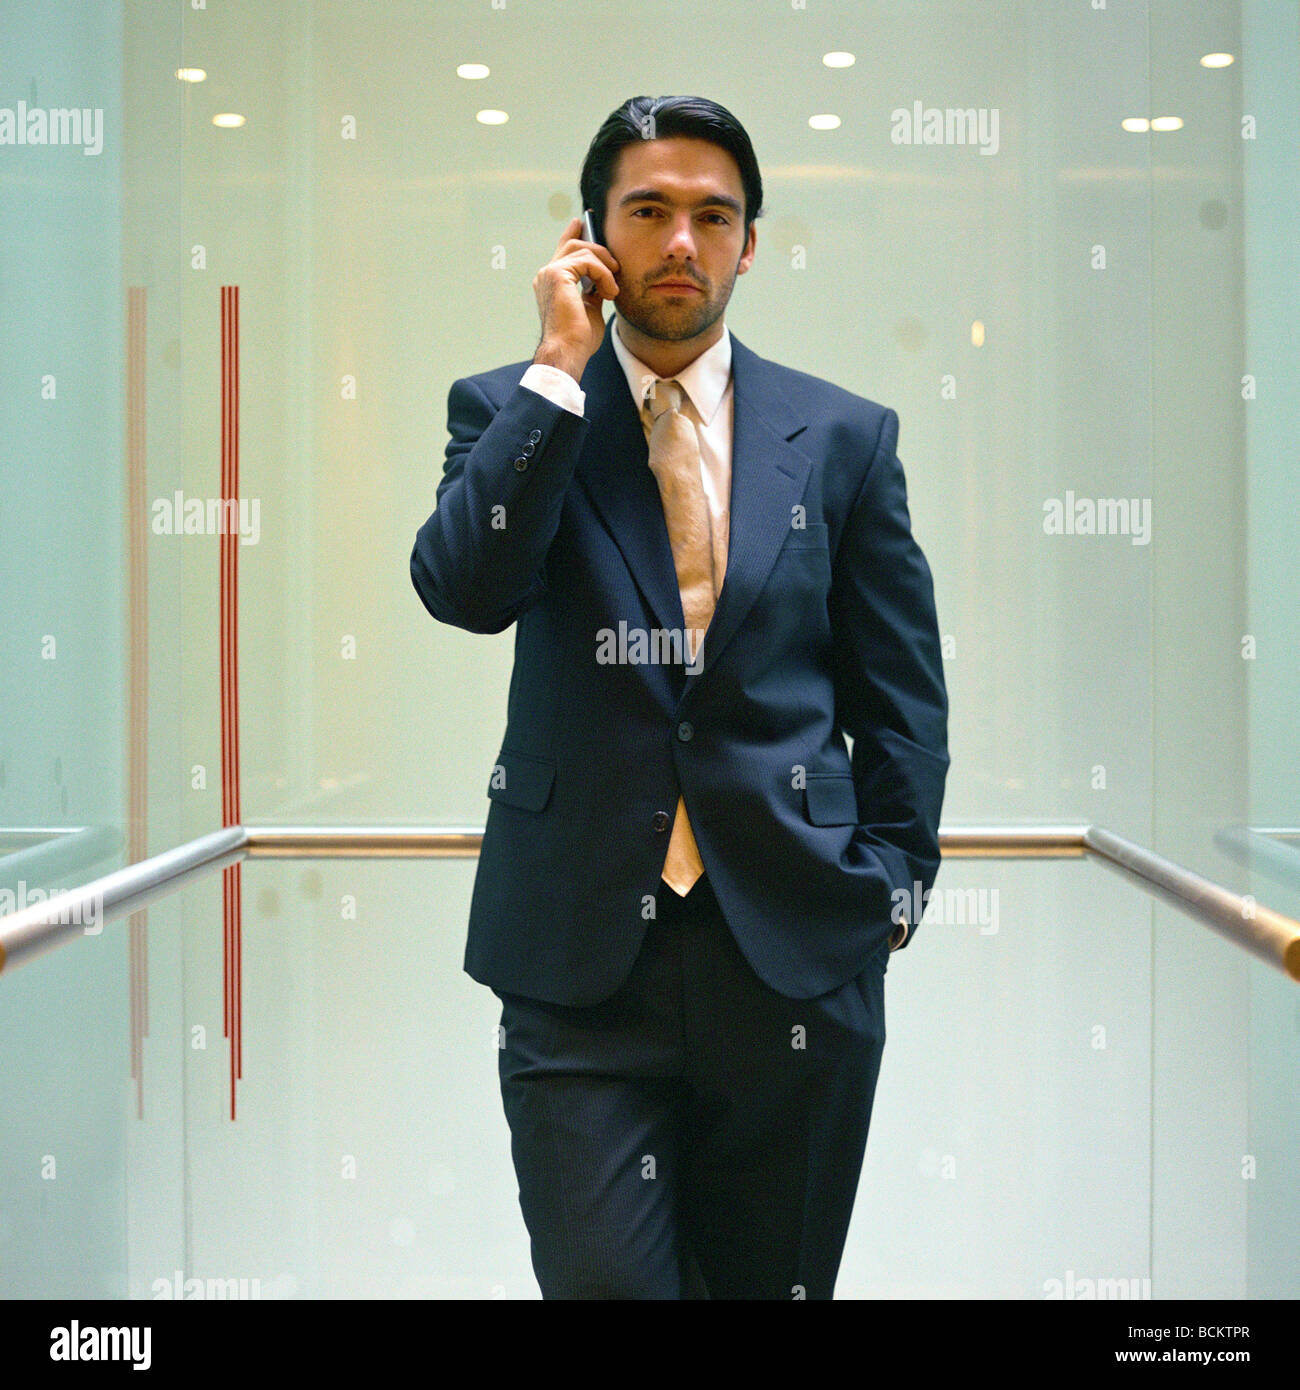 Businessman standing with cellphone in elevator Stock Photo